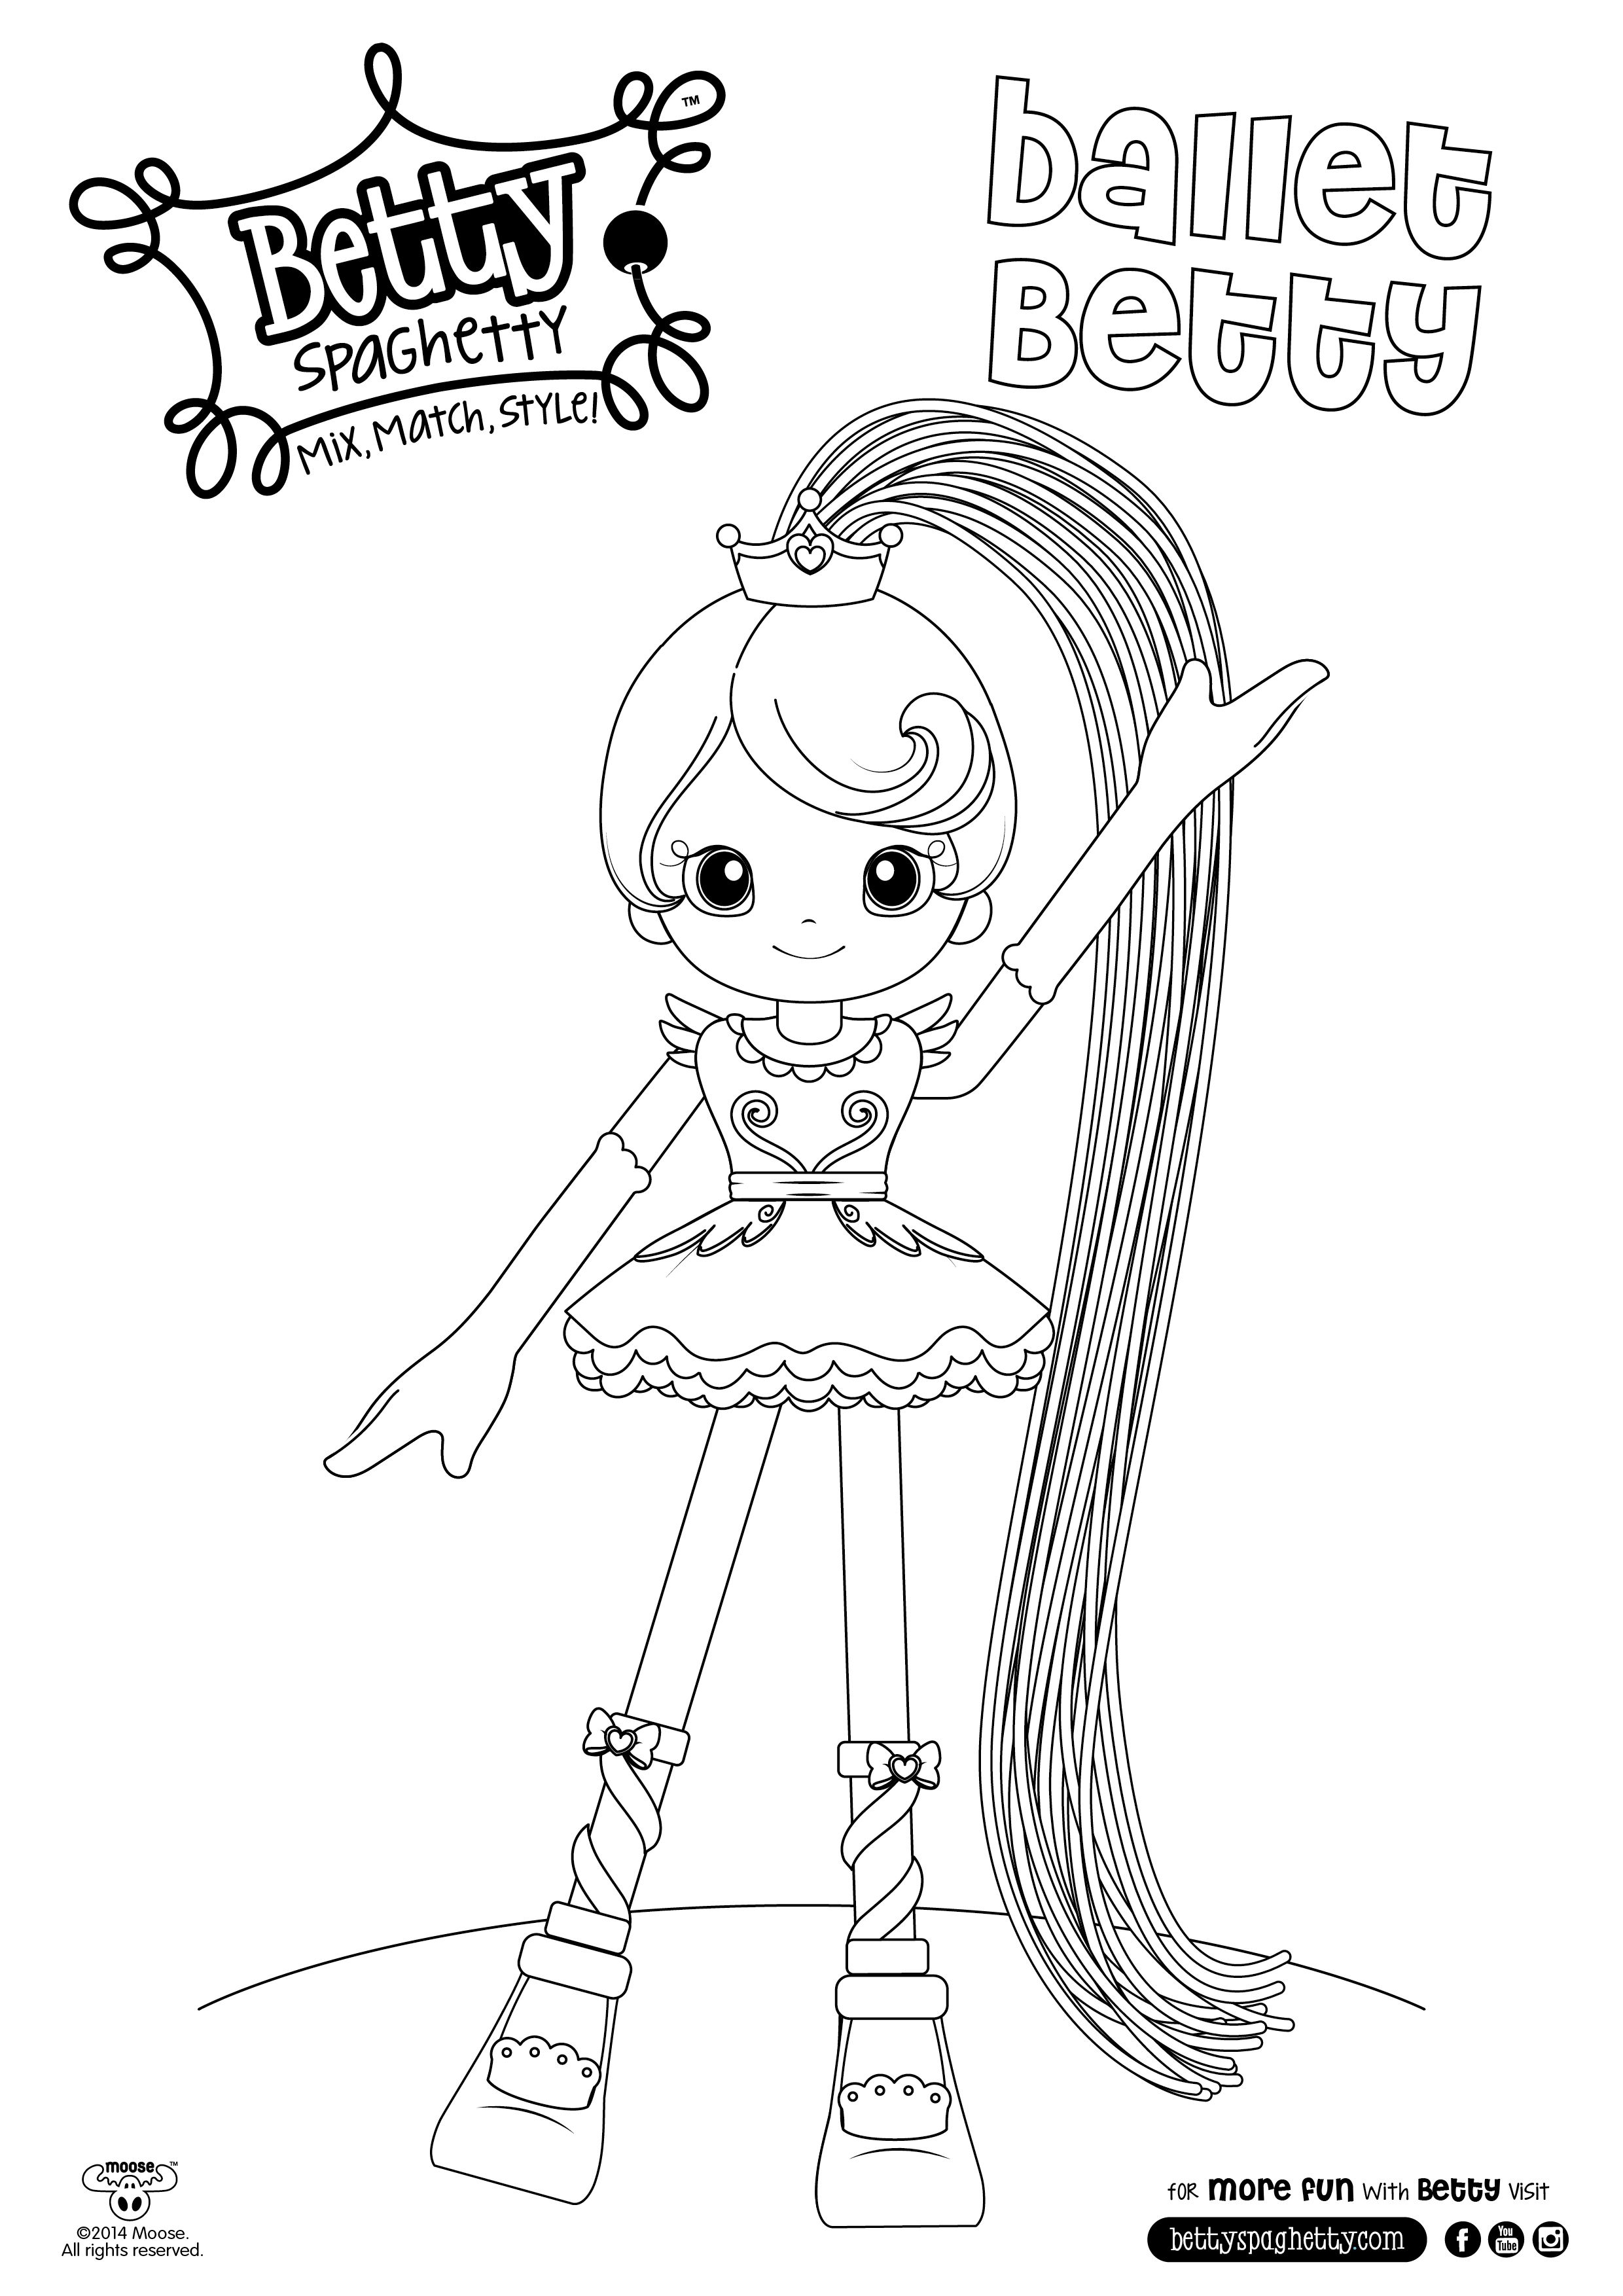 Betty spaghetty coloring pages